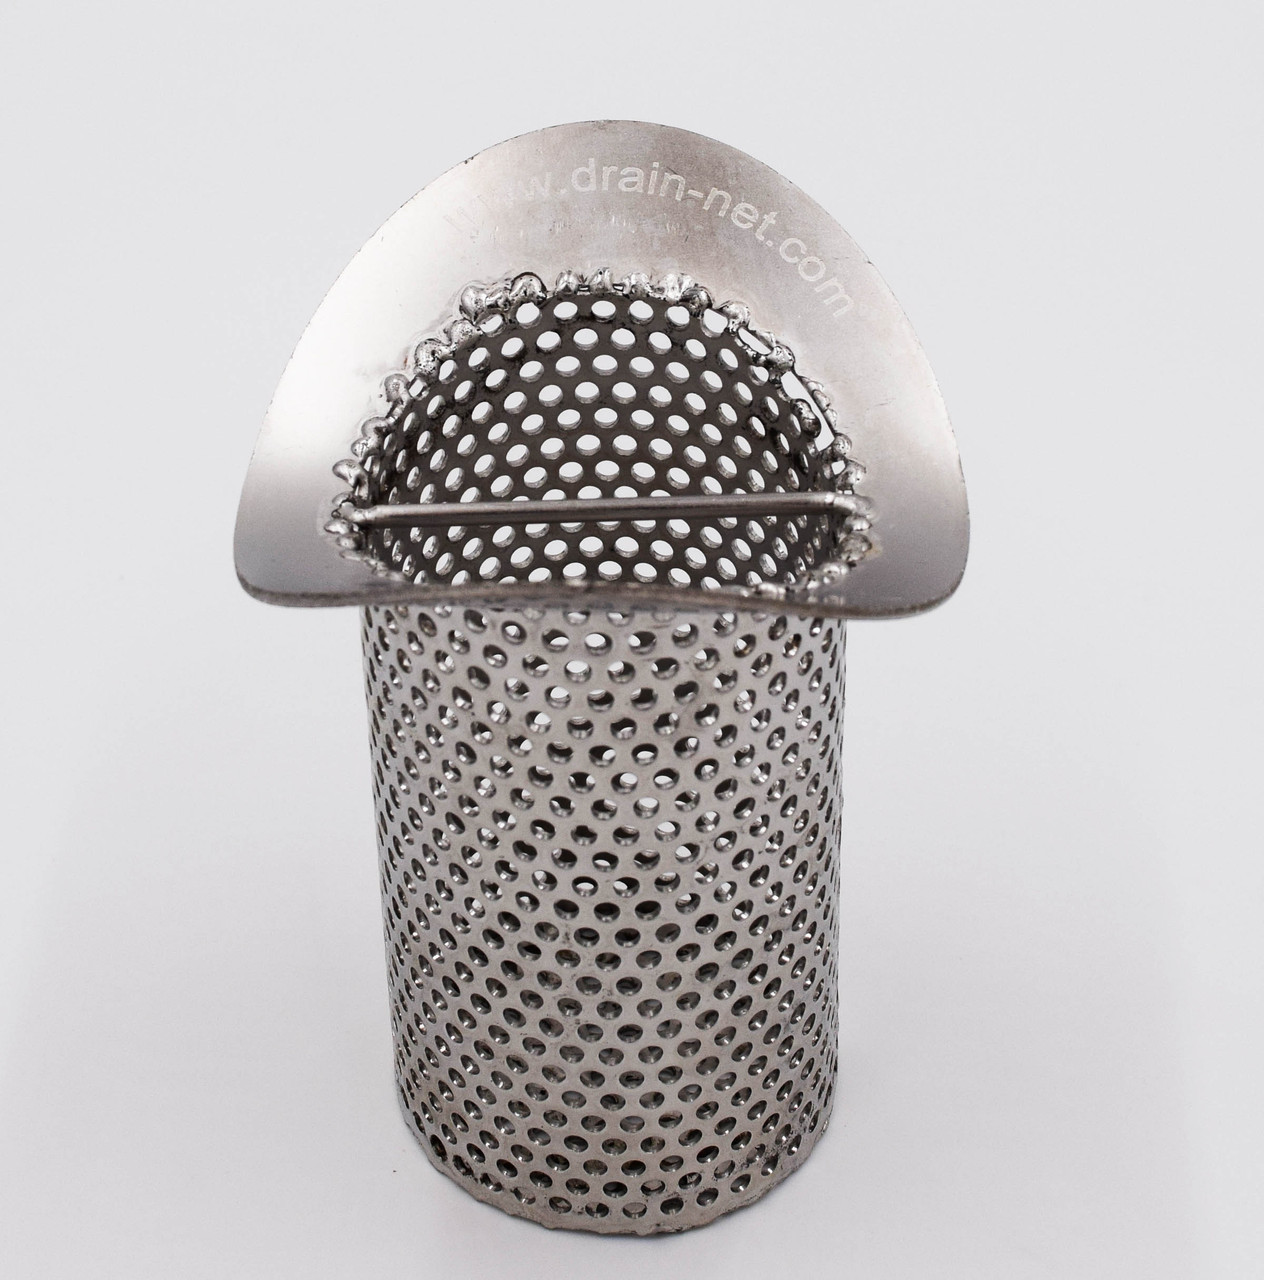 Curved stainless drain strainer